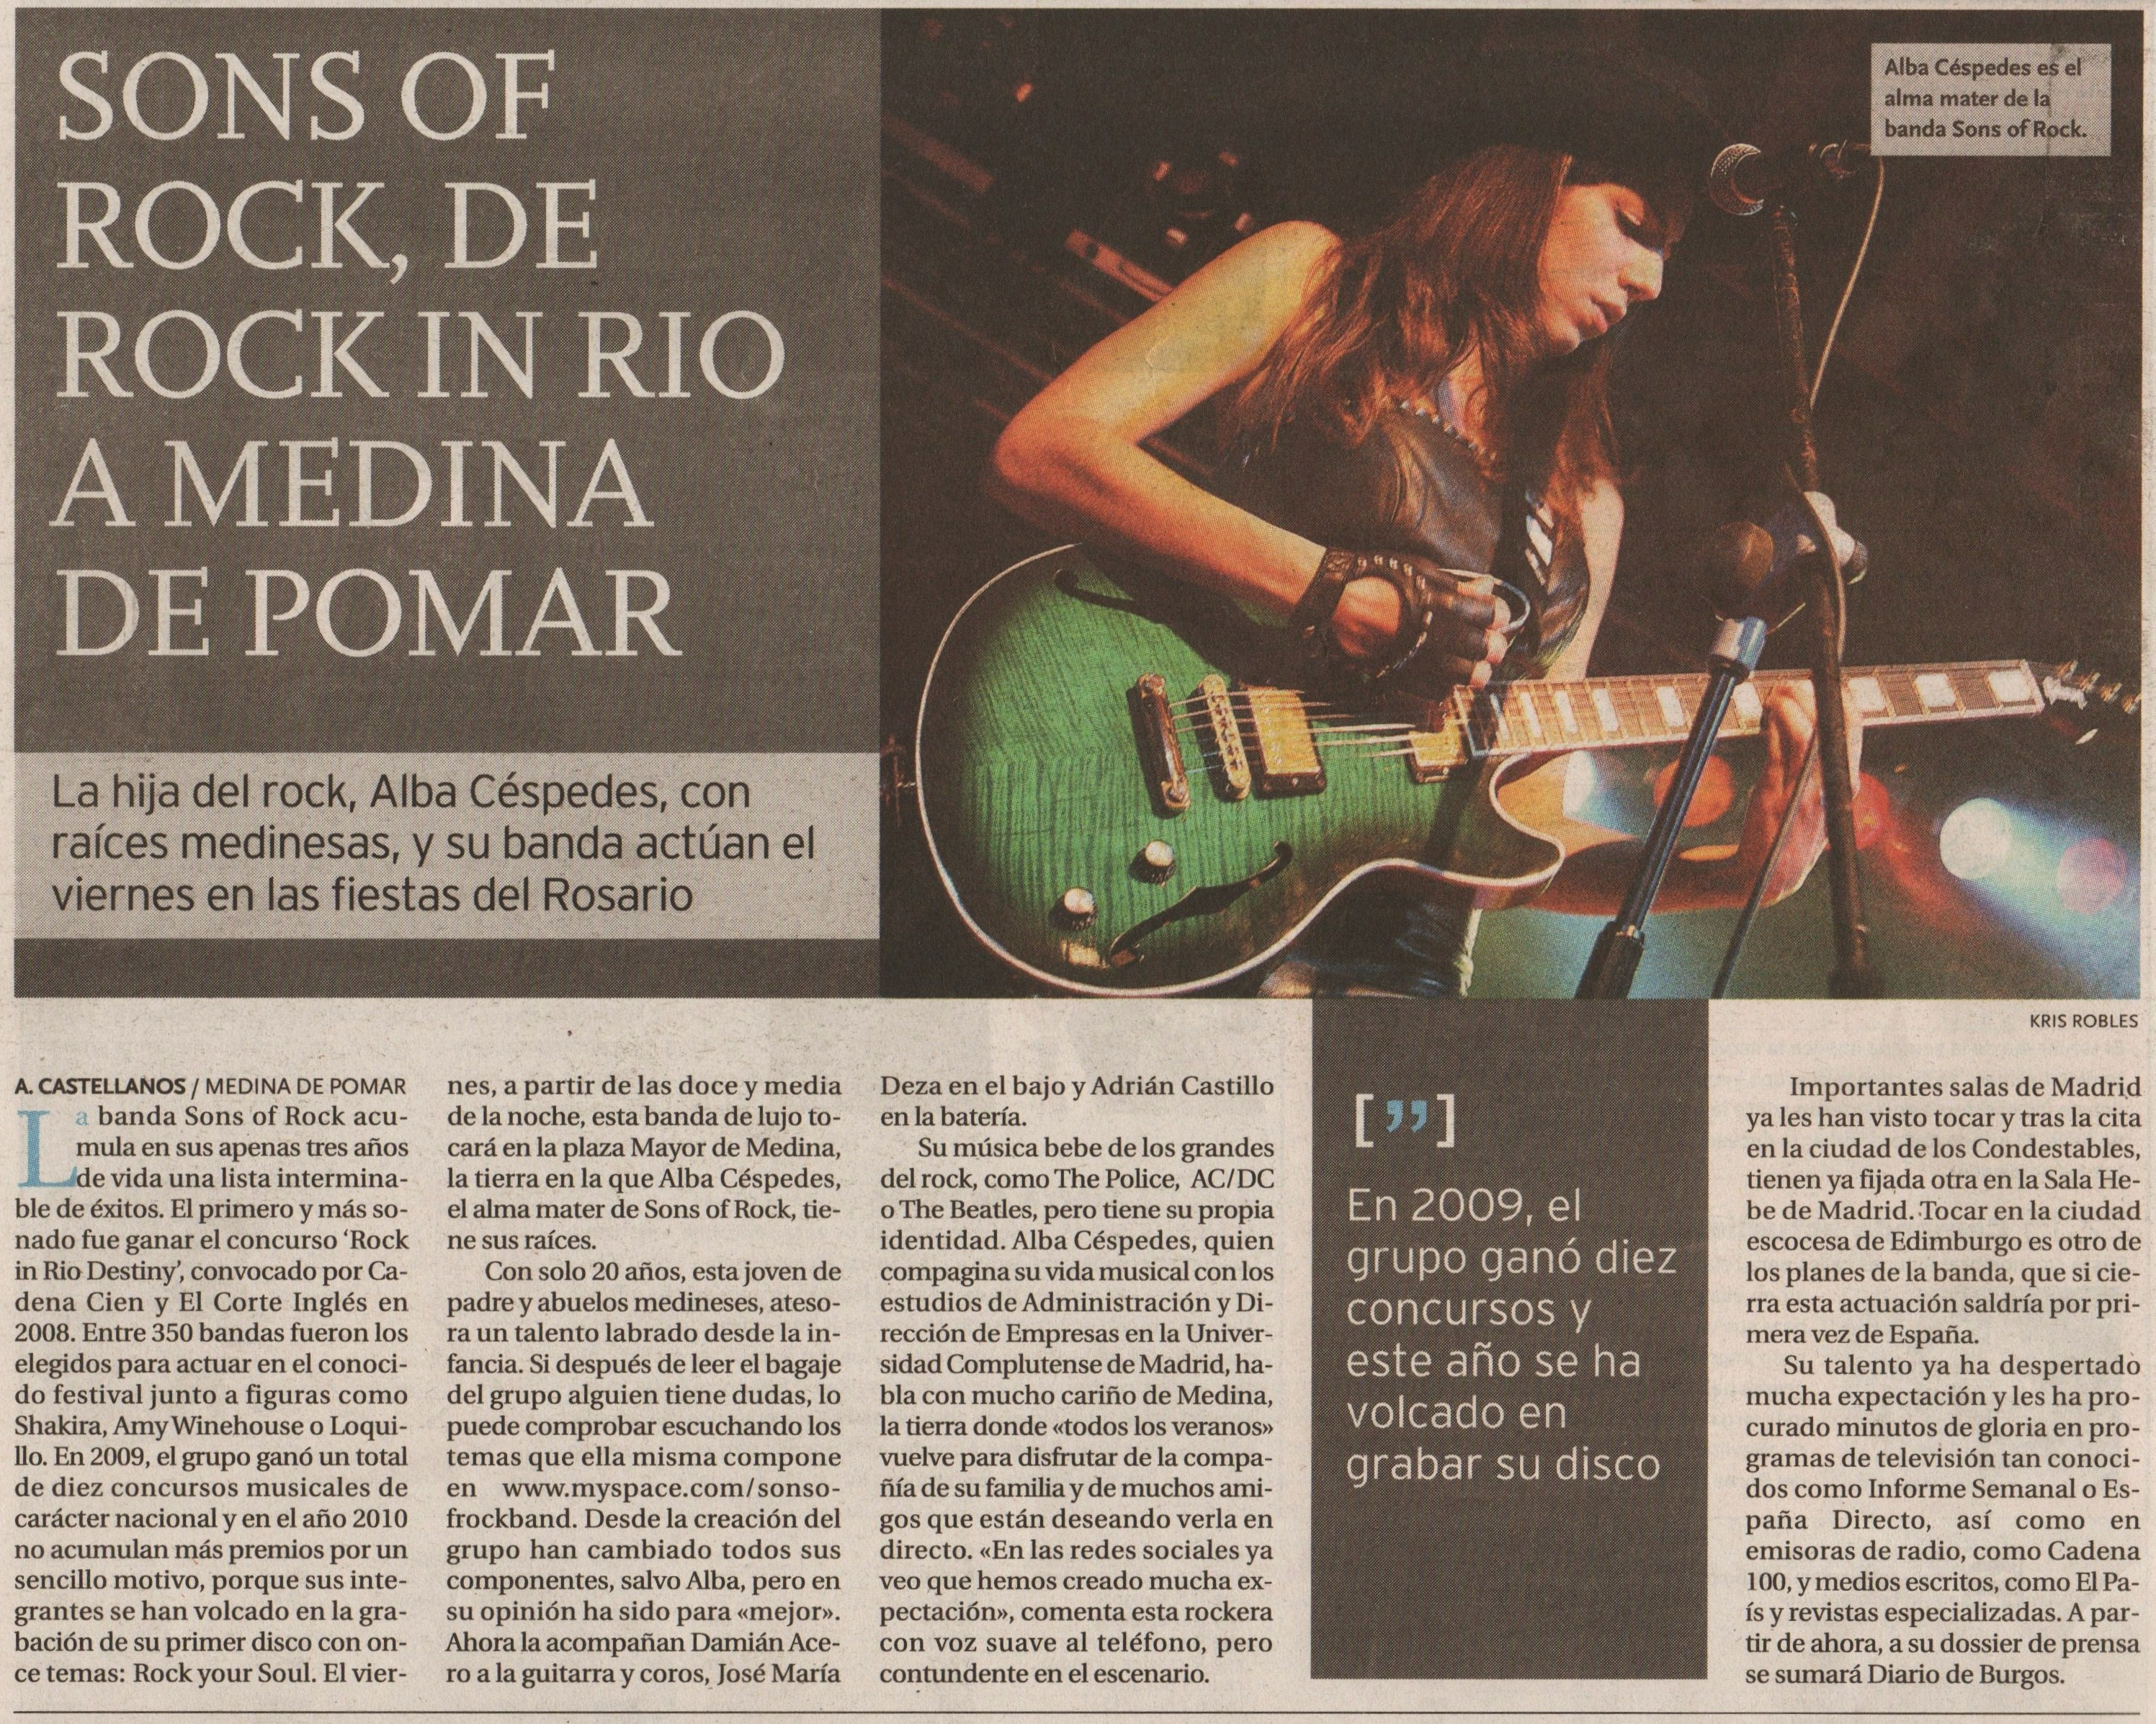 Feature in Diario de Burgos